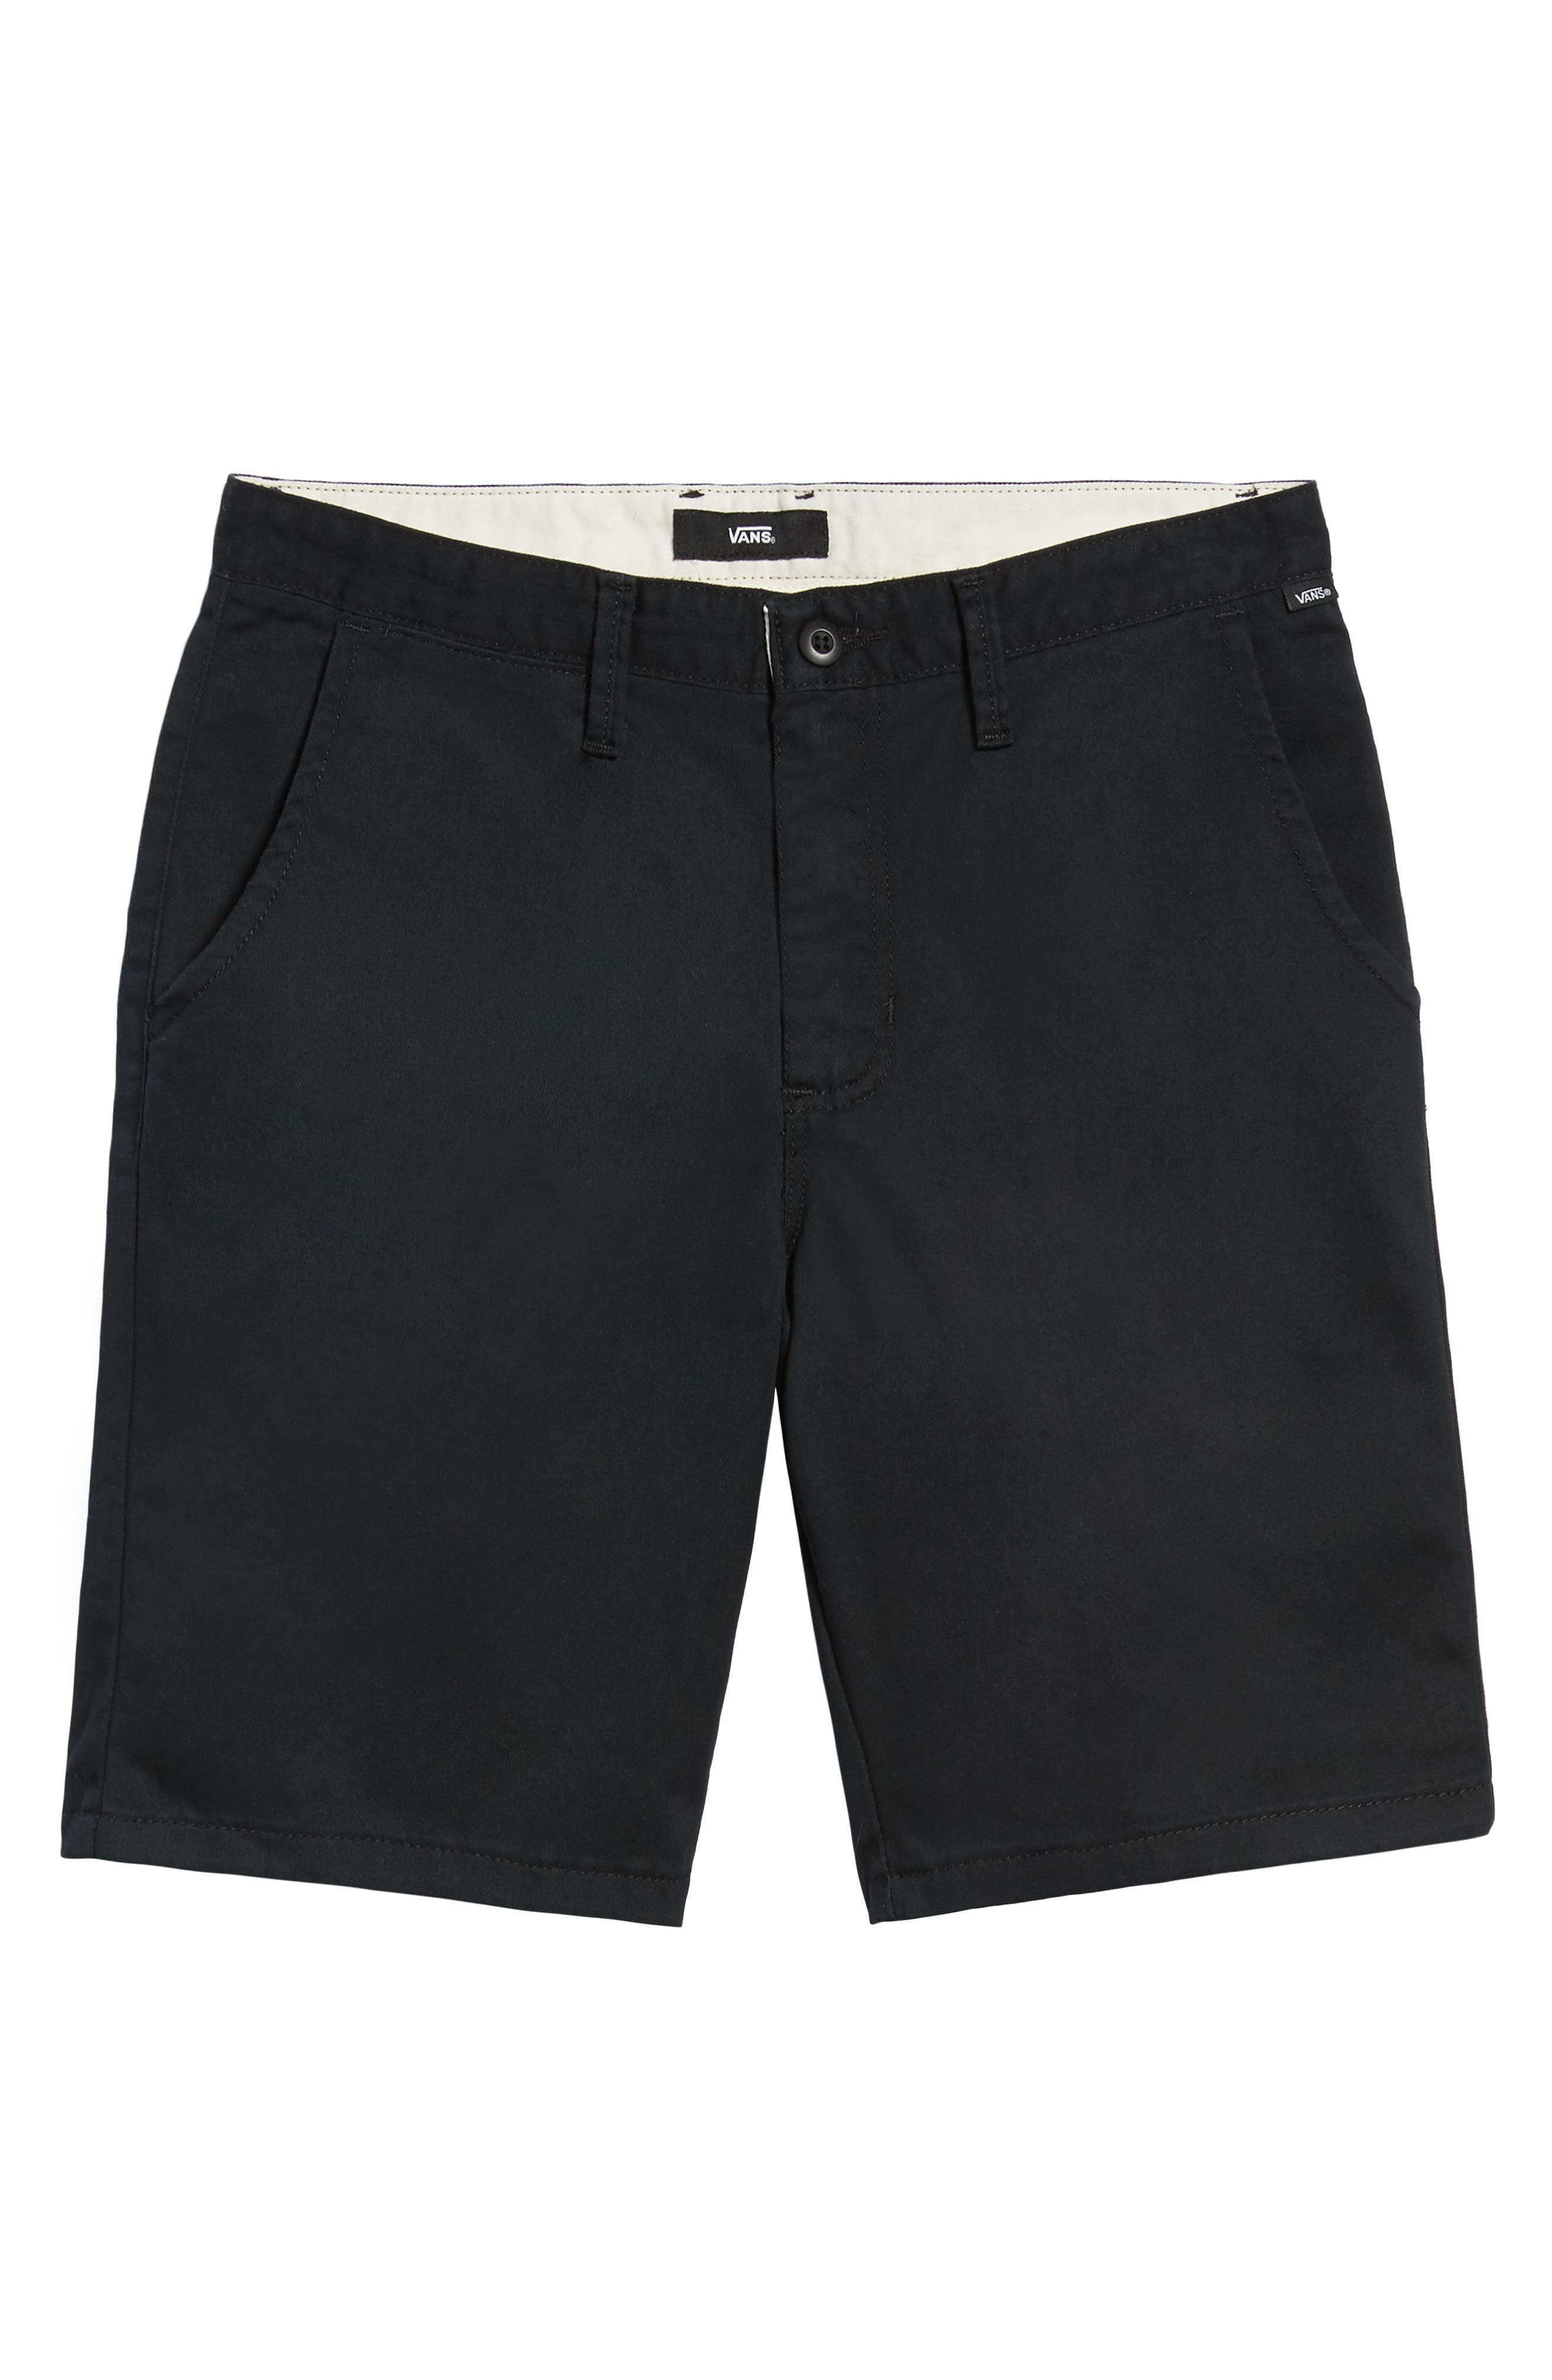 Stretch Twill Chino Shorts,                             Alternate thumbnail 6, color,                             BLACK